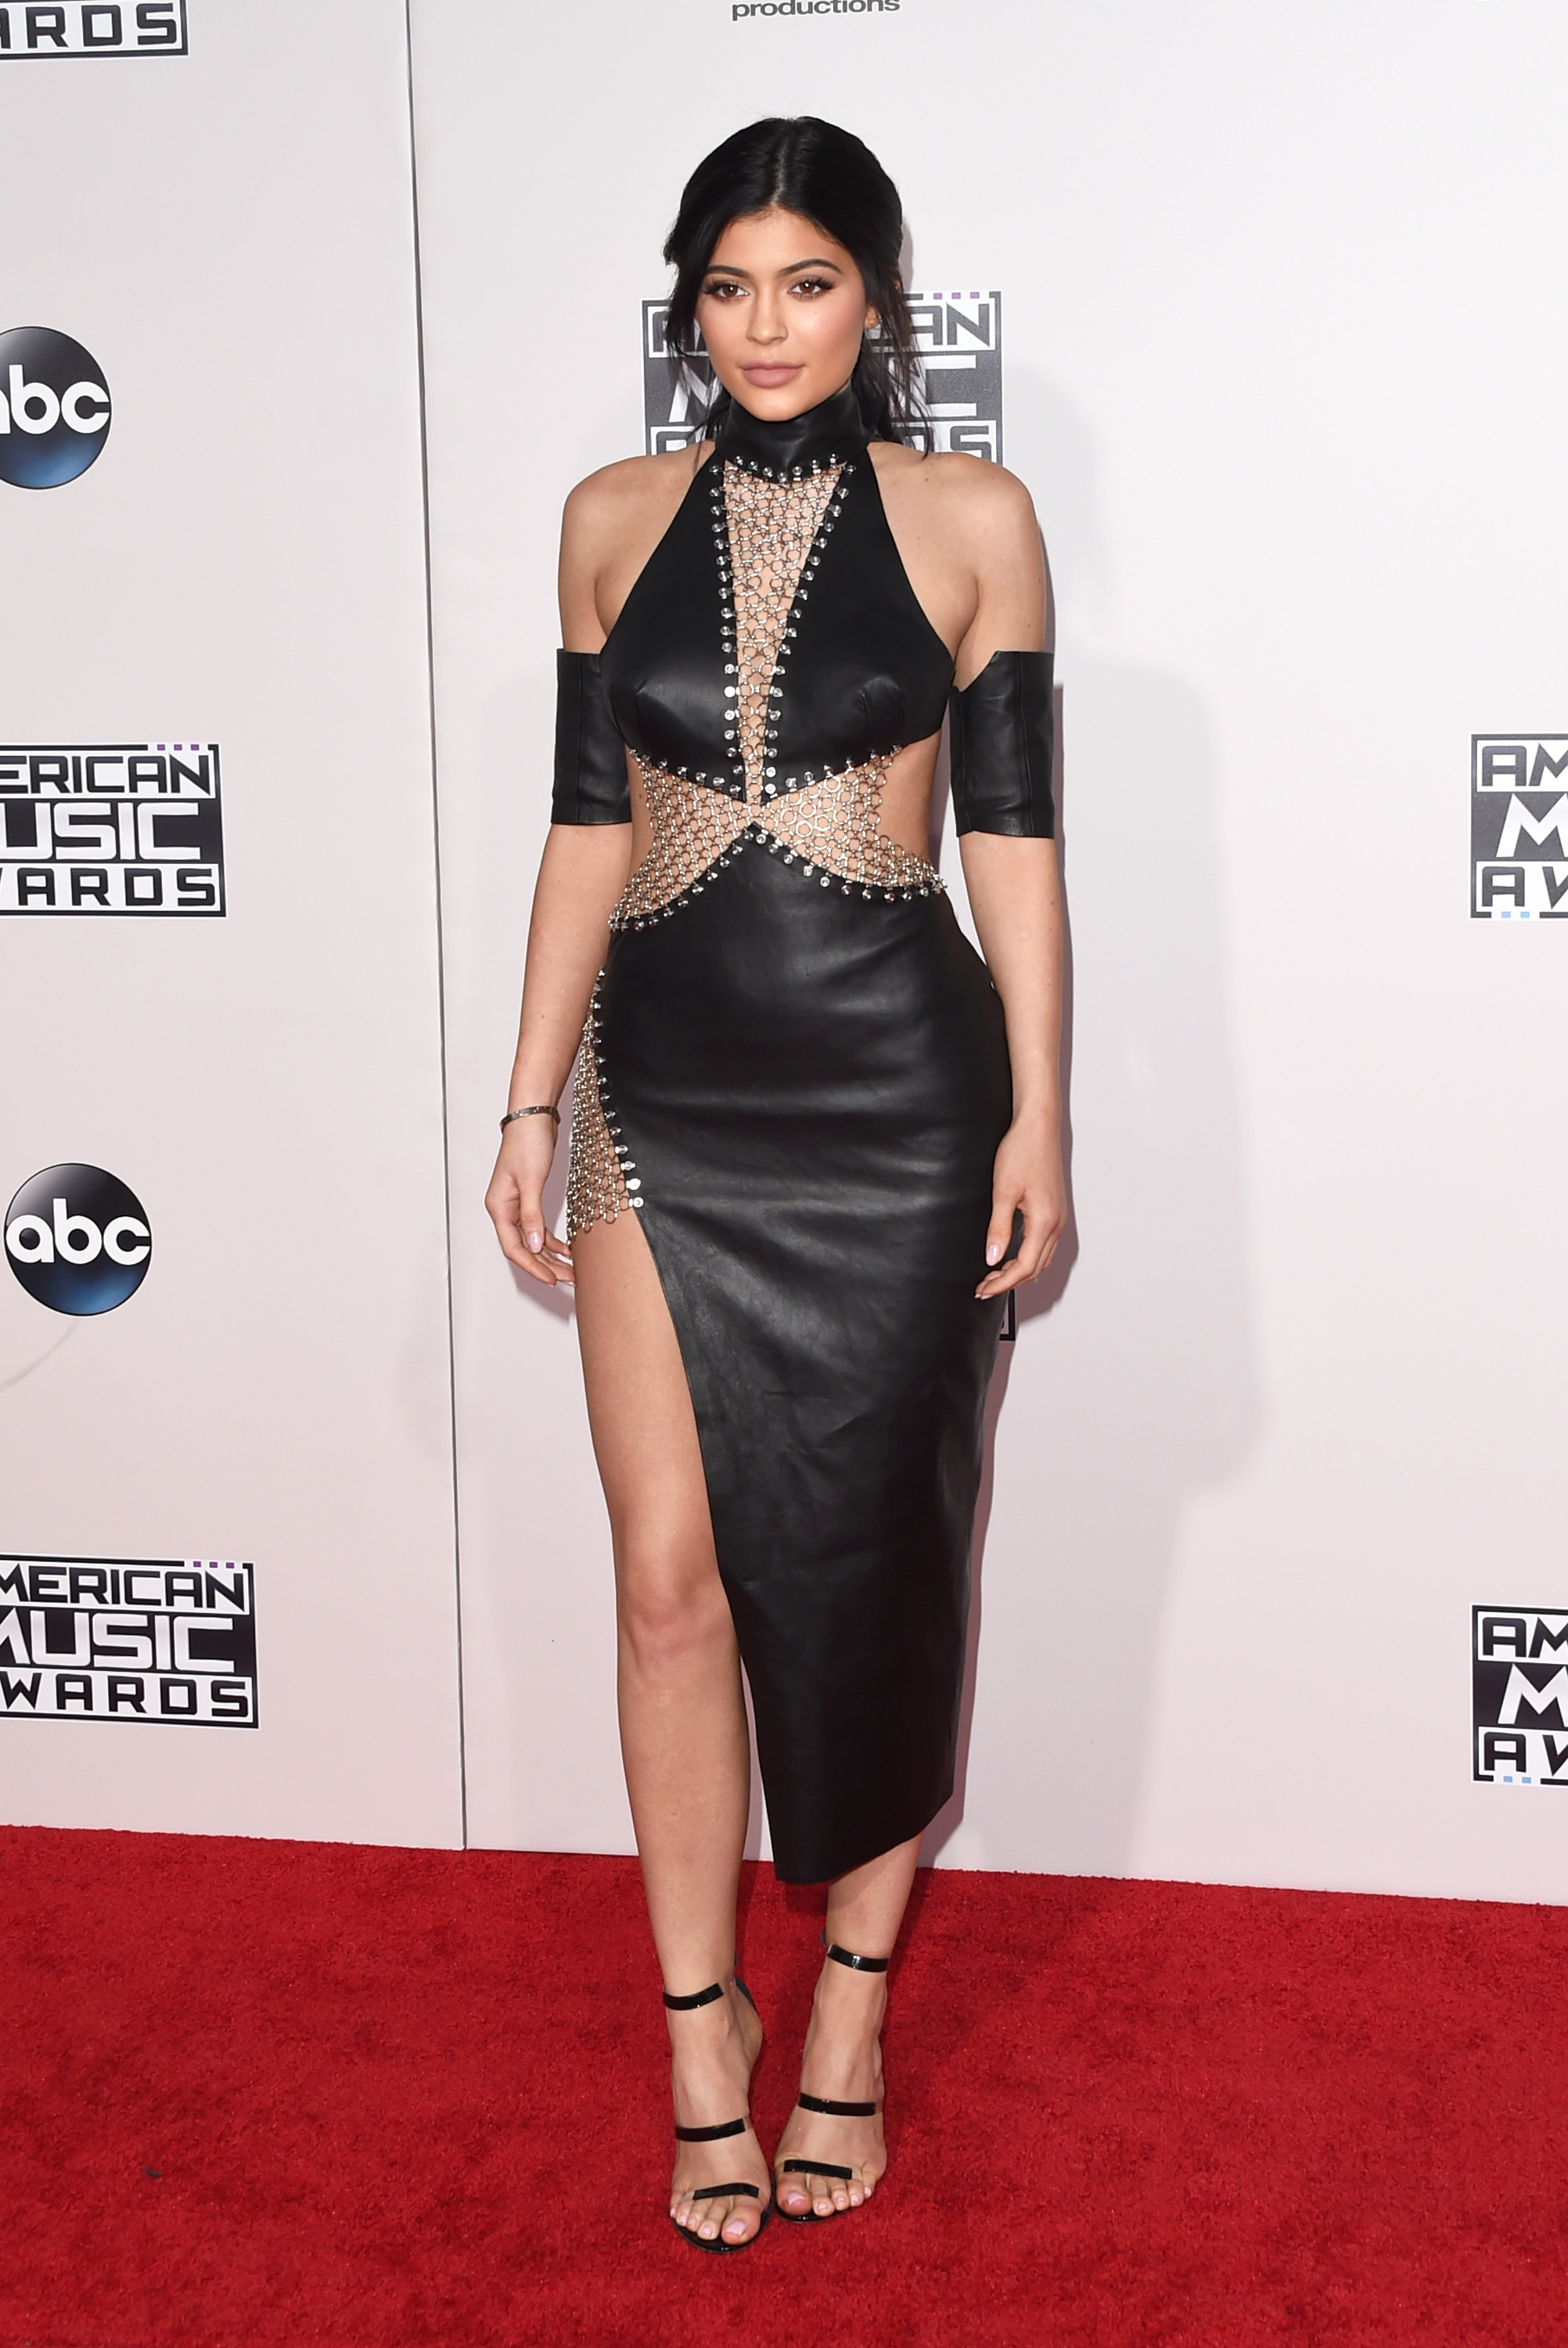 American Music Awards' worst red carpet looks, starring One Direction, Kylie Jenner, Justin Bieber [GALLERY]